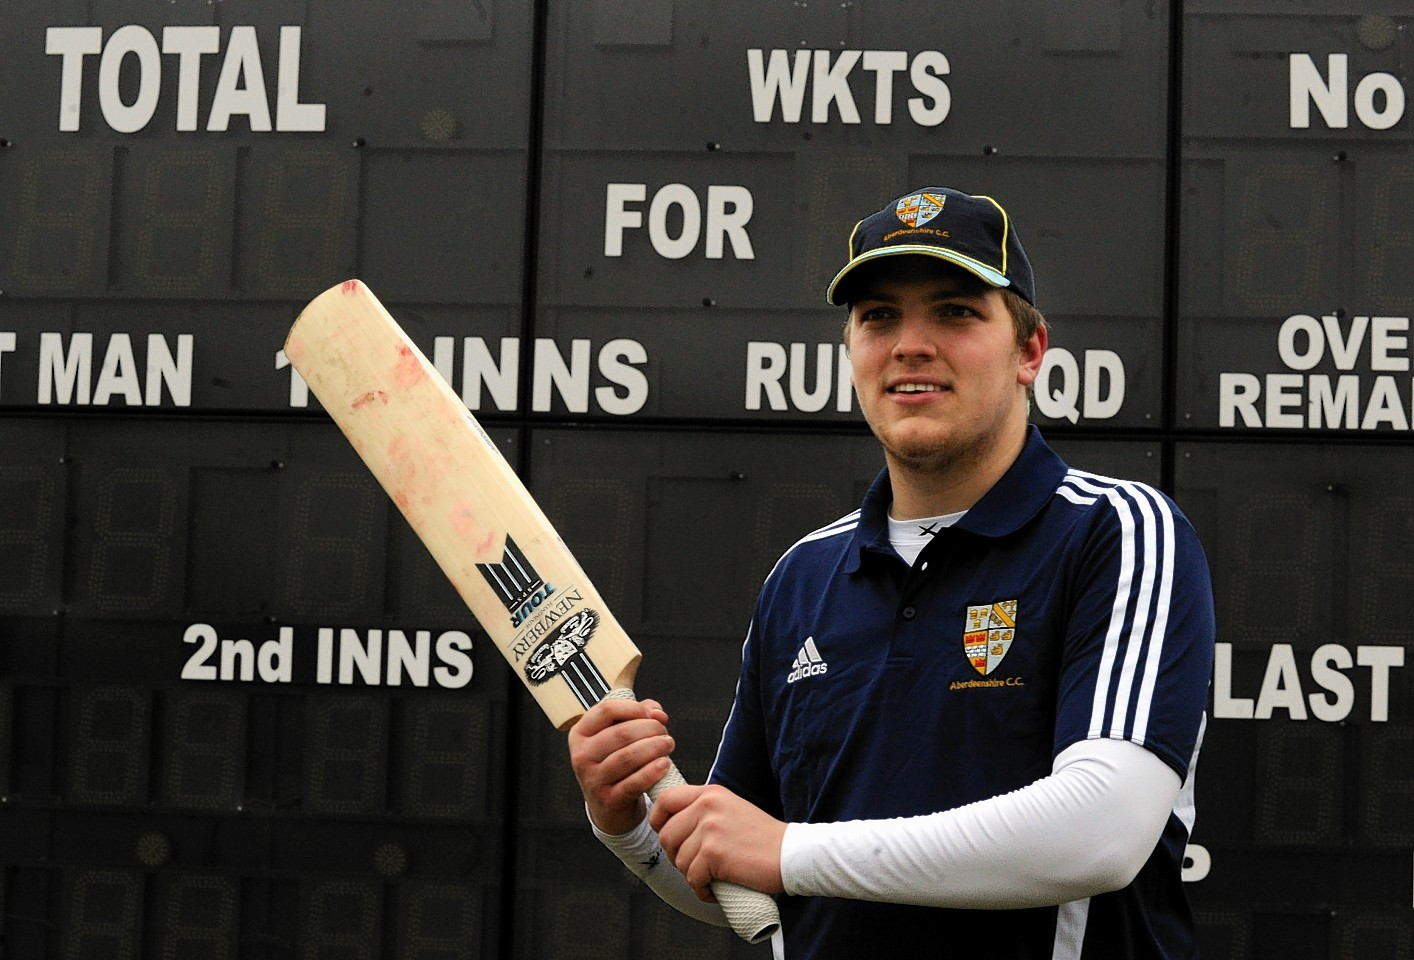 Shire batsman Chris Venske is back in action following a month out with a broken bone in his hand